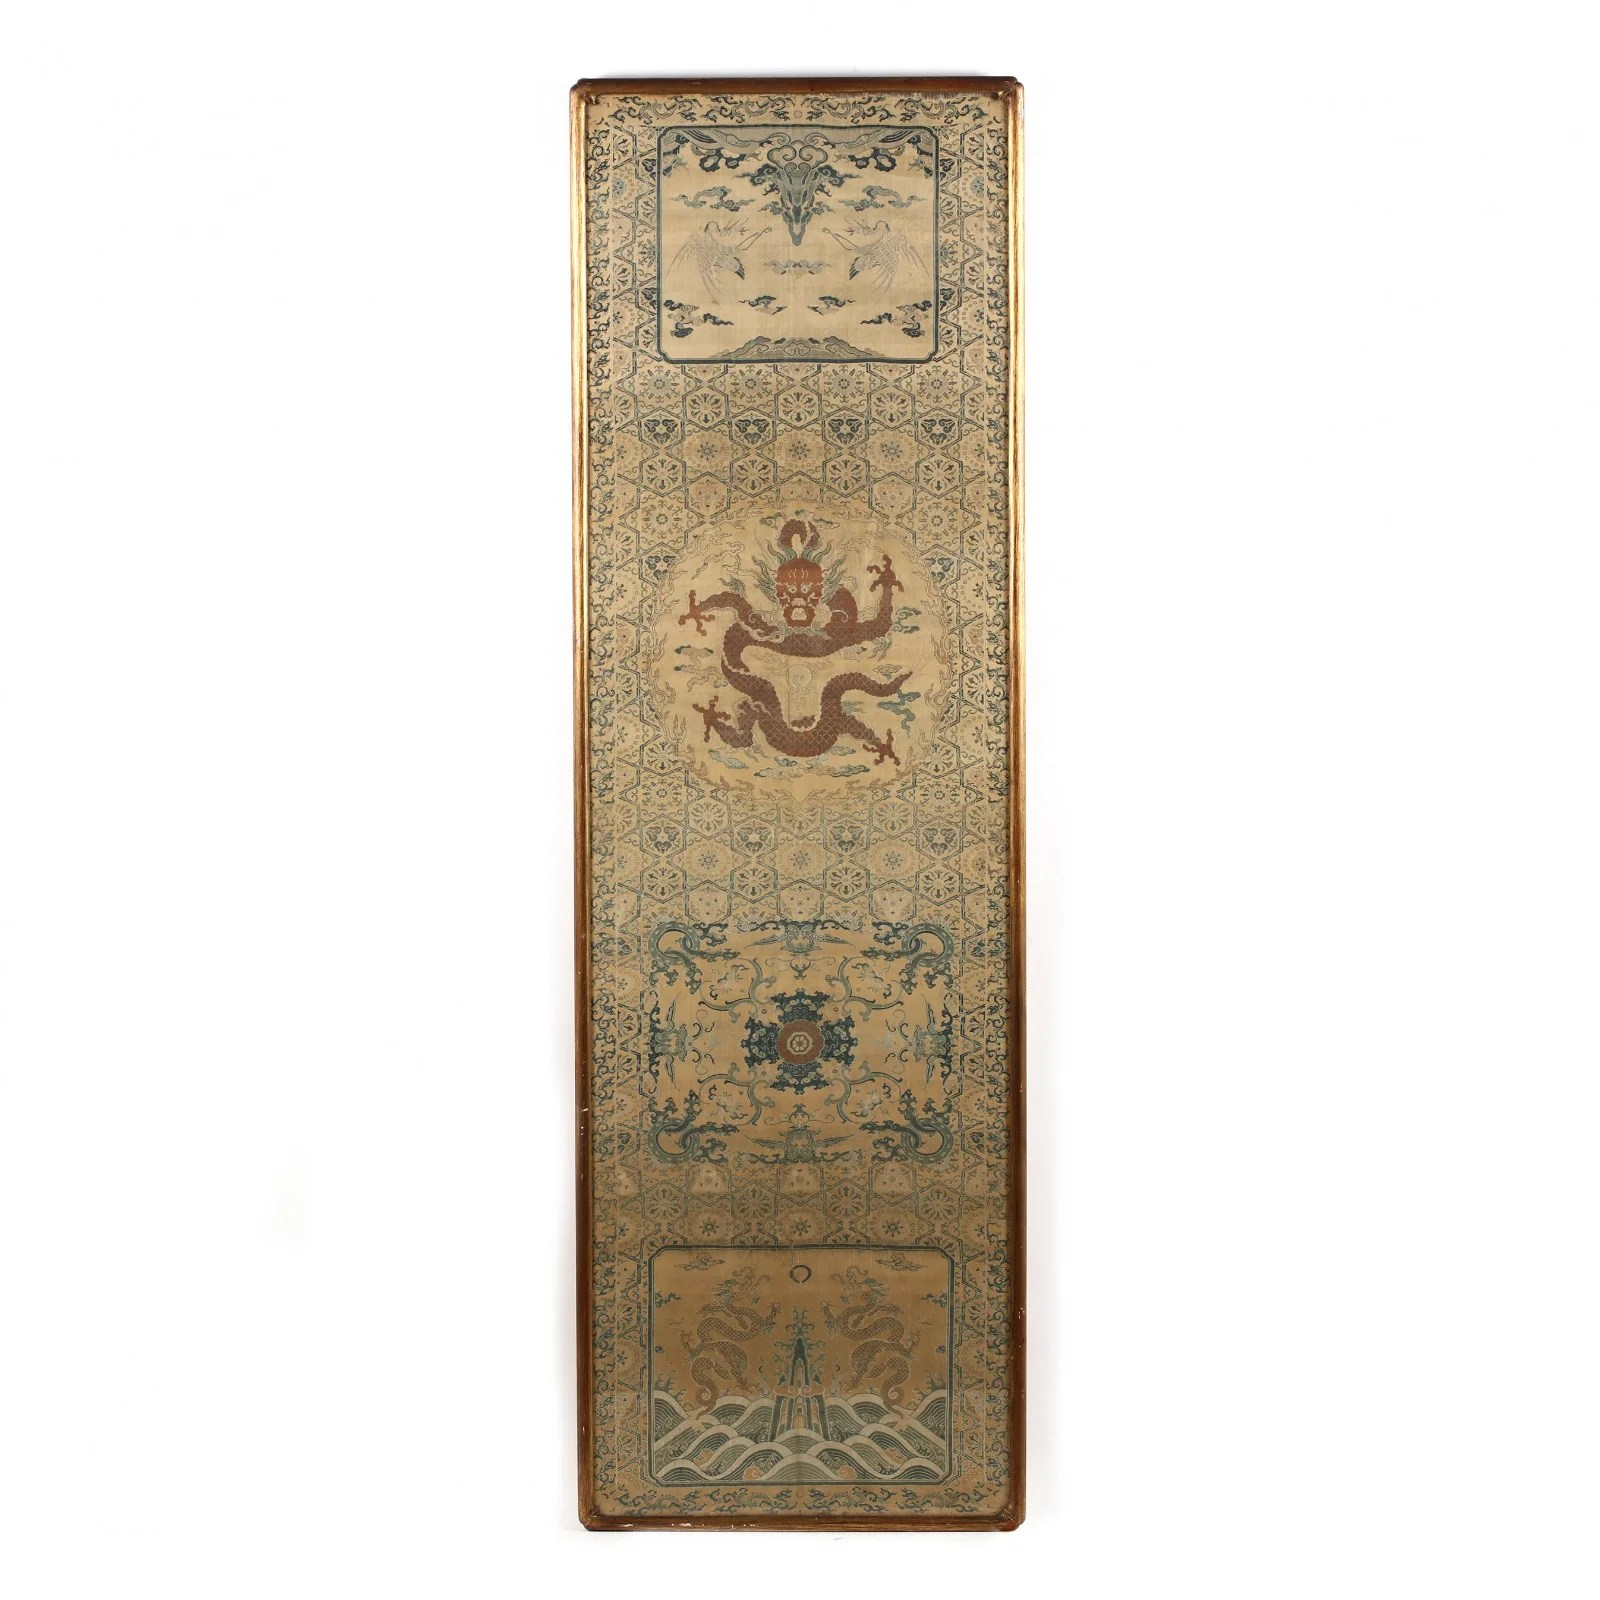 A Chinese Silk Textile Panel